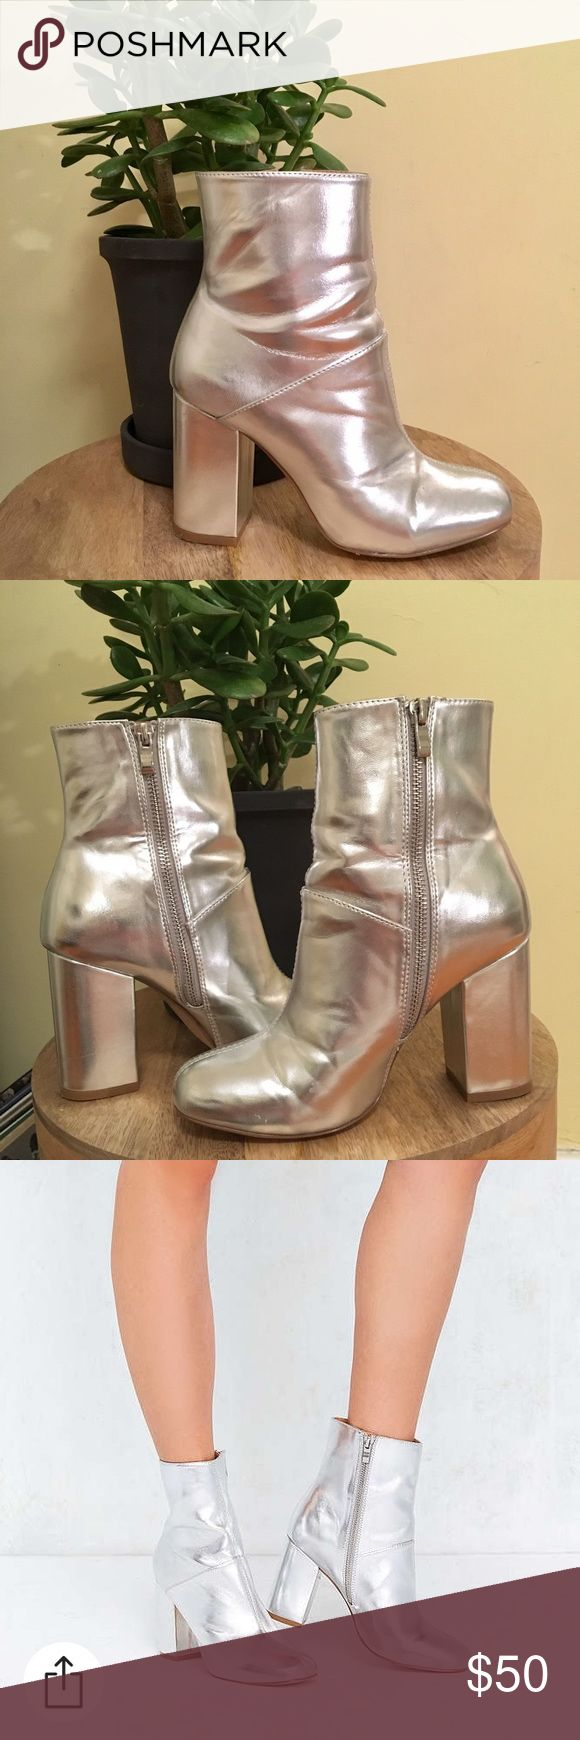 URBAN OUTFITTERS Metallic Silver Ankle Boots Mildly obsessed with these boots. Metallic silver heeled boots from Urban. Comfortable block heel and inside zipper. These have only been worn a few times and are in great condition! Urban Outfitters Shoes Ankle Boots & Booties